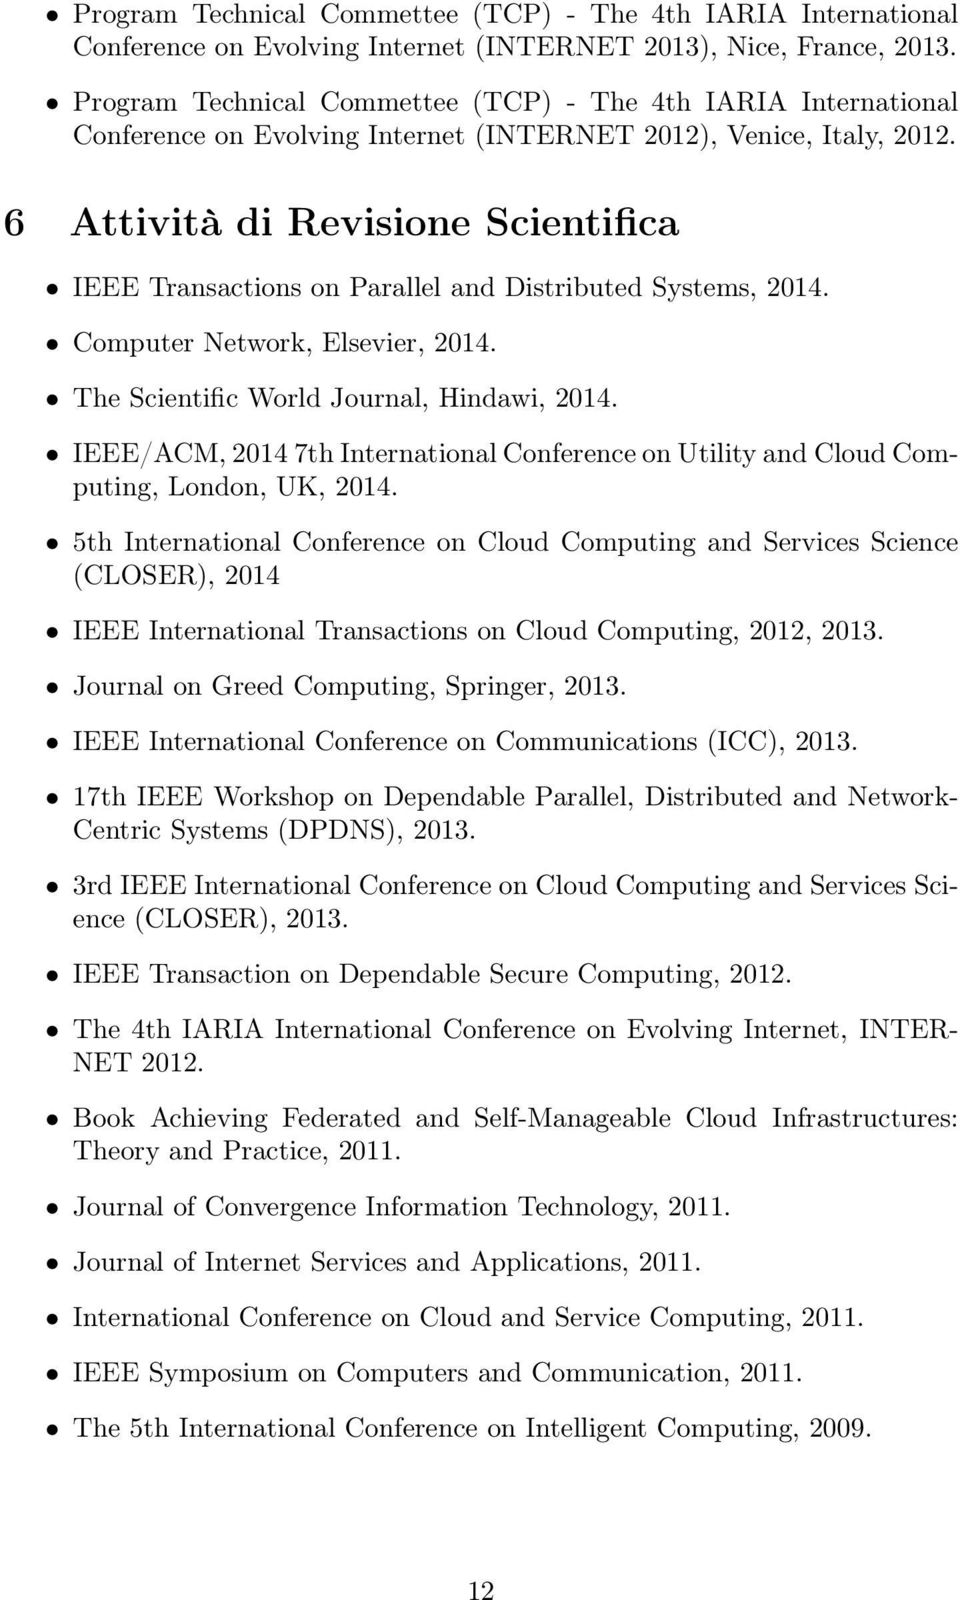 6 Attività di Revisione Scientifica IEEE Transactions on Parallel and Distributed Systems, 2014. Computer Network, Elsevier, 2014. The Scientific World Journal, Hindawi, 2014.